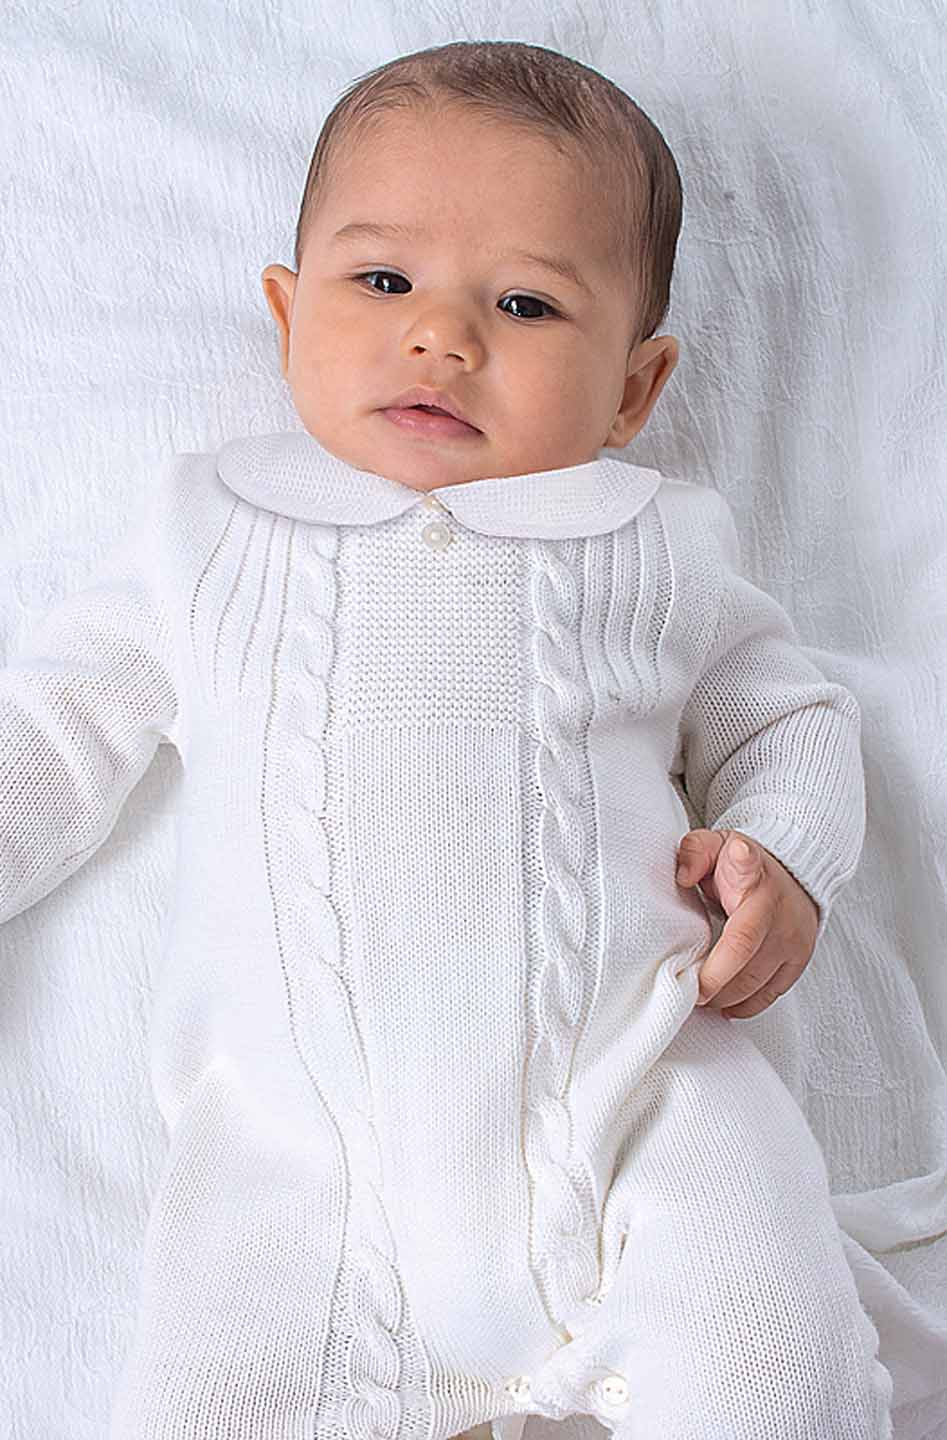 Shop Baby Boy Rompers & Sunsuits Carter's, the leading brand of children's clothing, gifts and accessories.